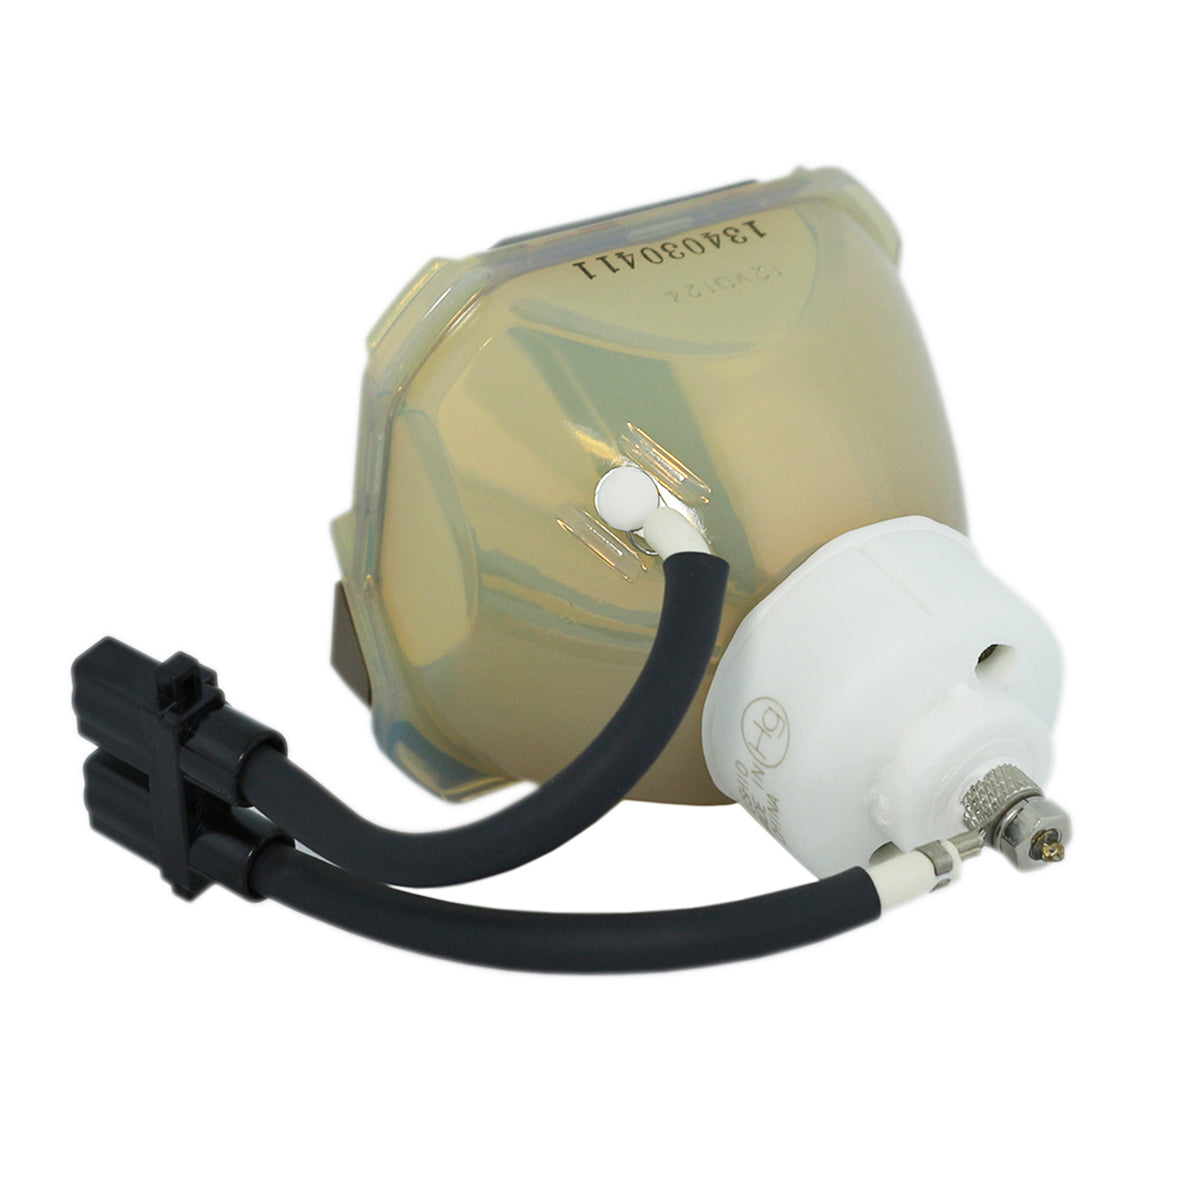 3M 78-6969-9260-7 Ushio Projector Bare Lamp